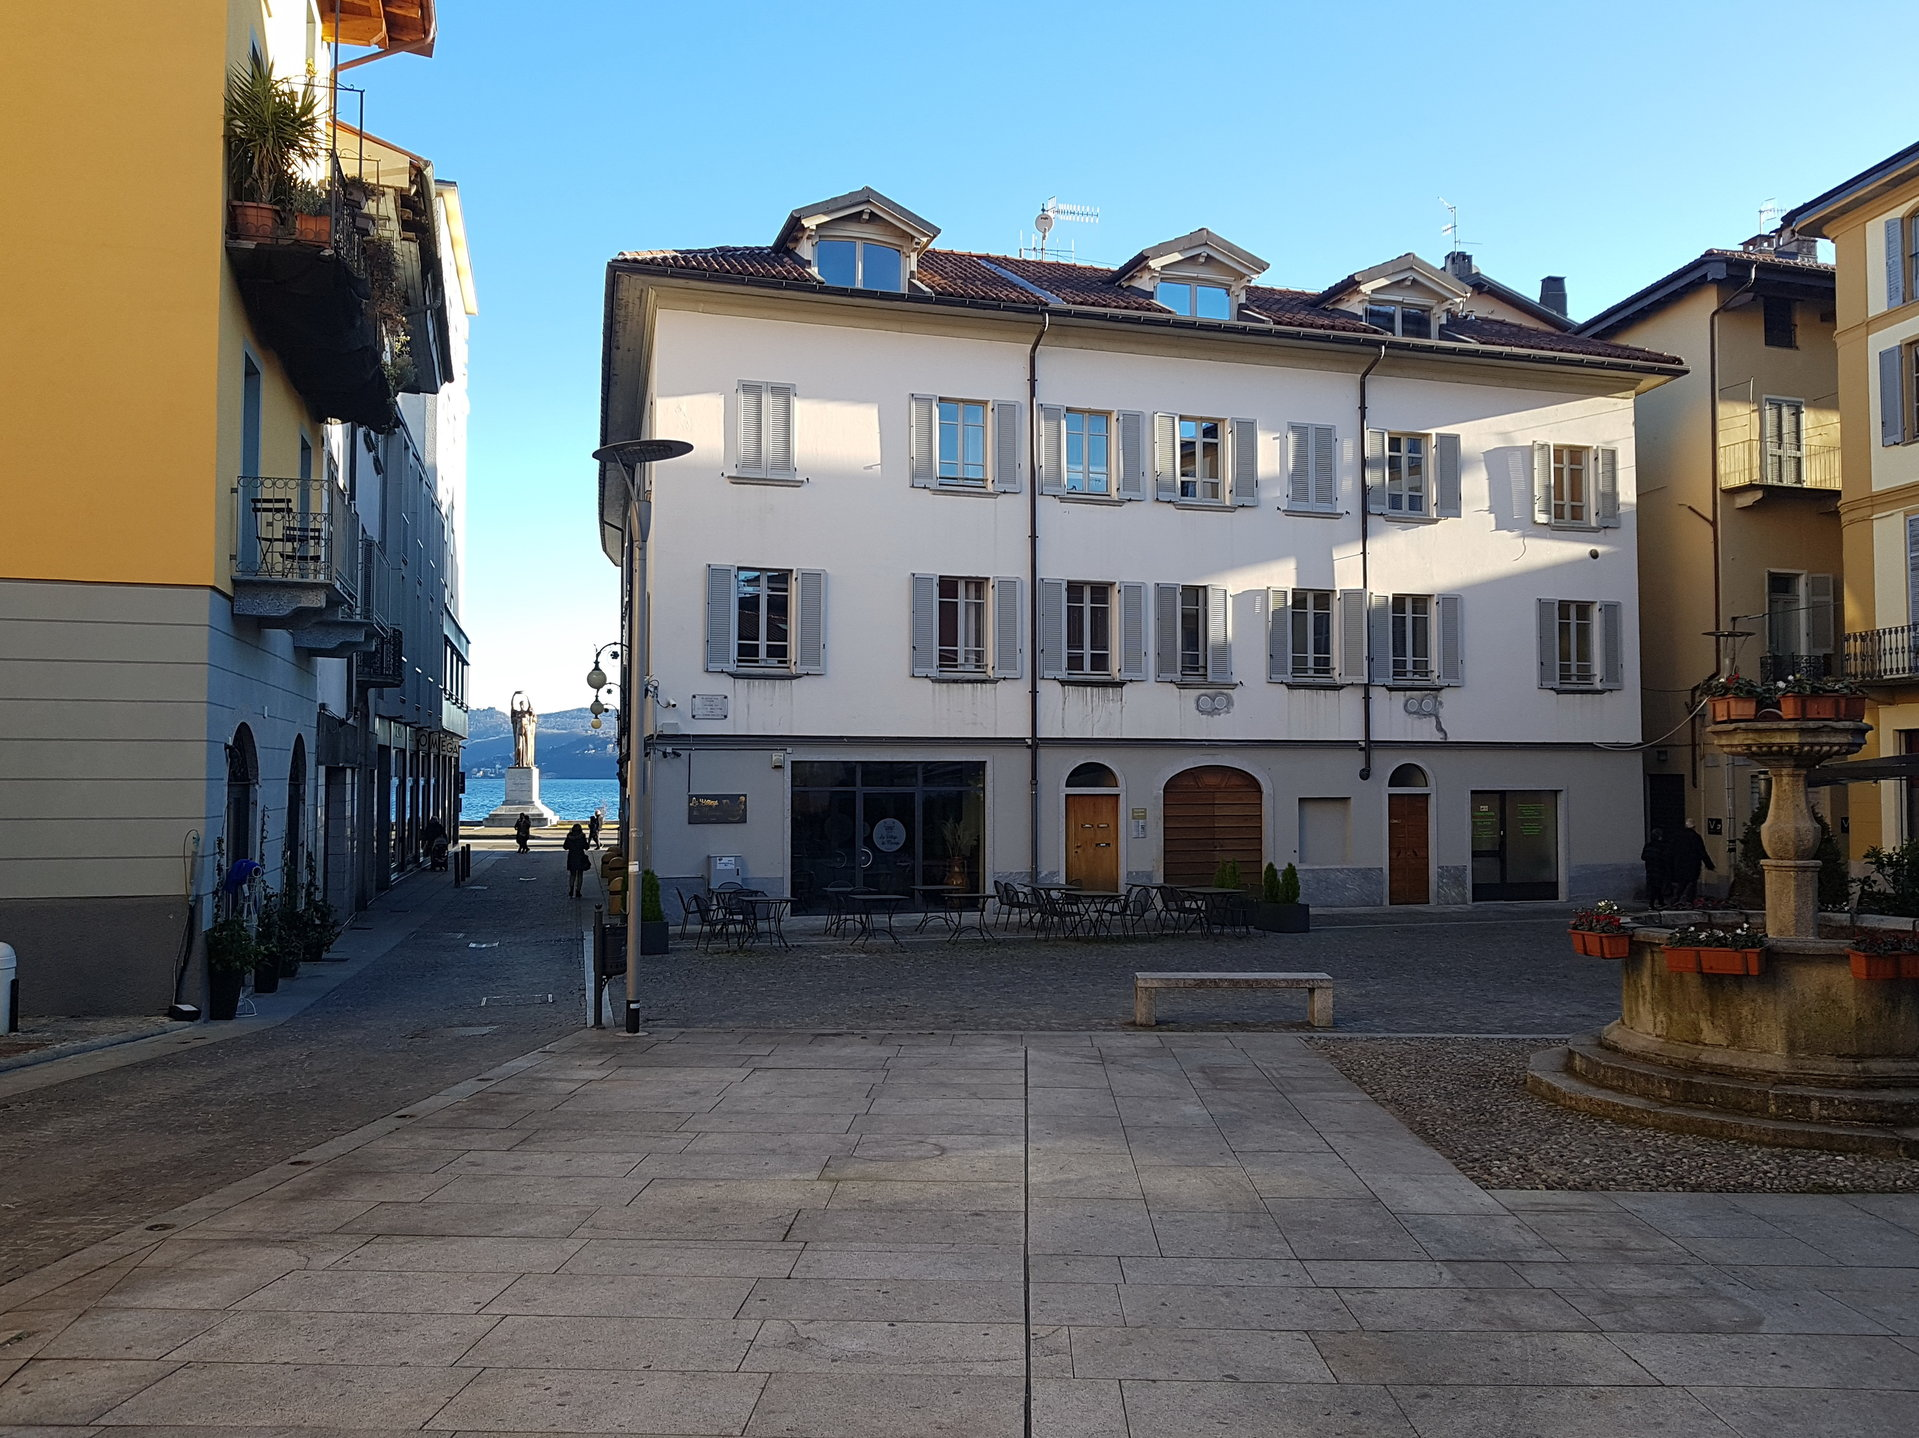 Renovated apartment / office for sale in the center of Verbania